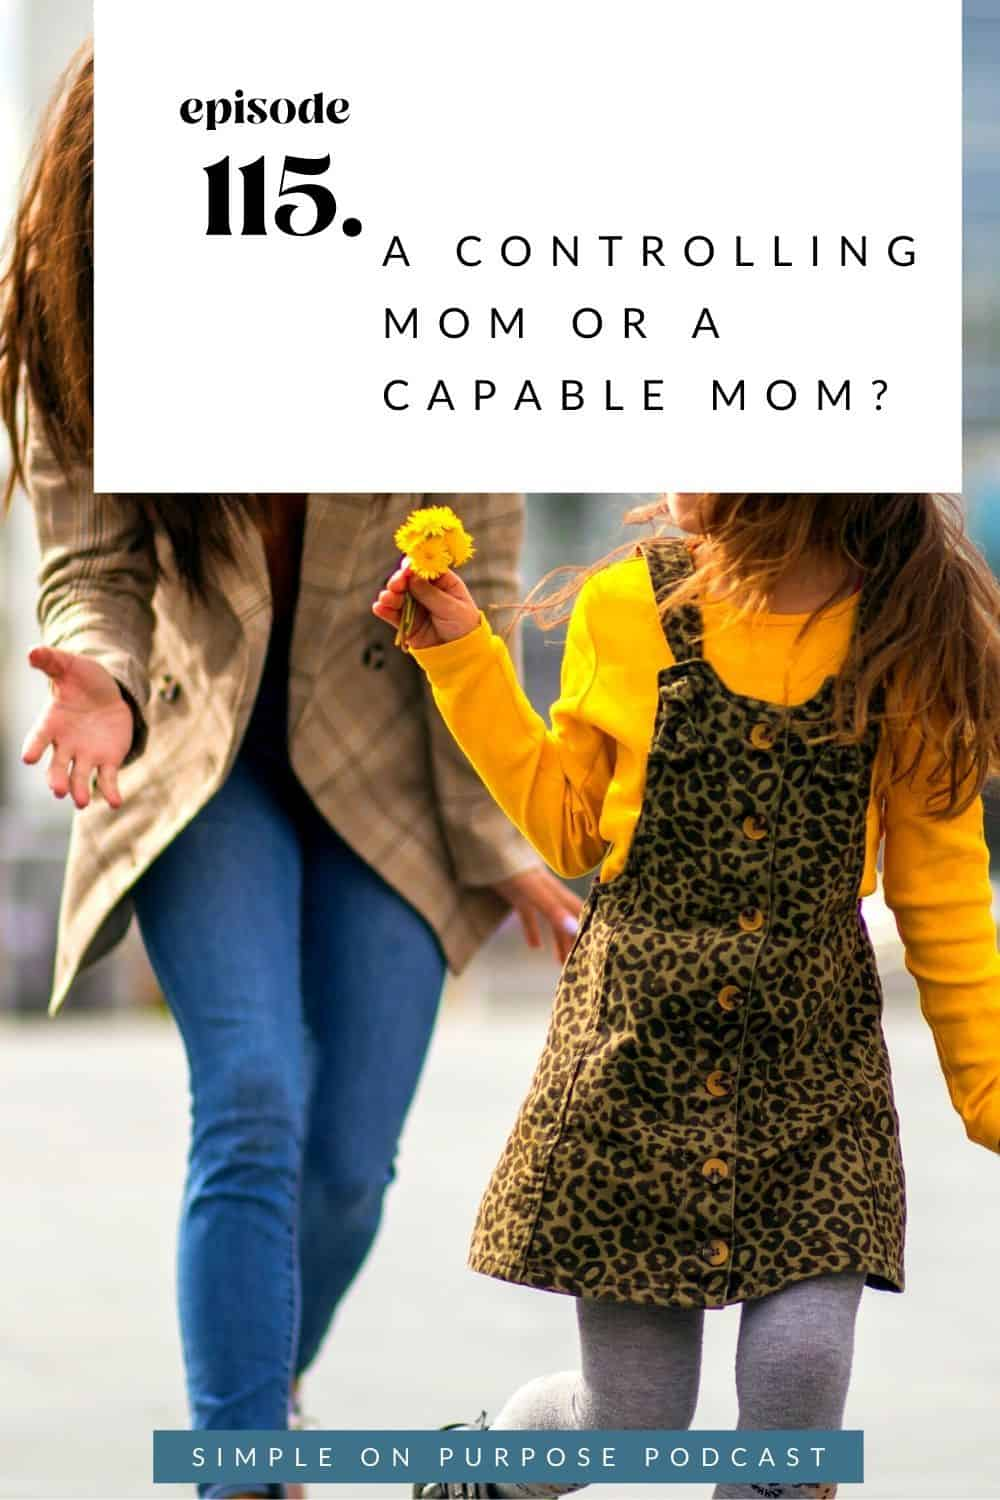 a controlling mom or a capable mom